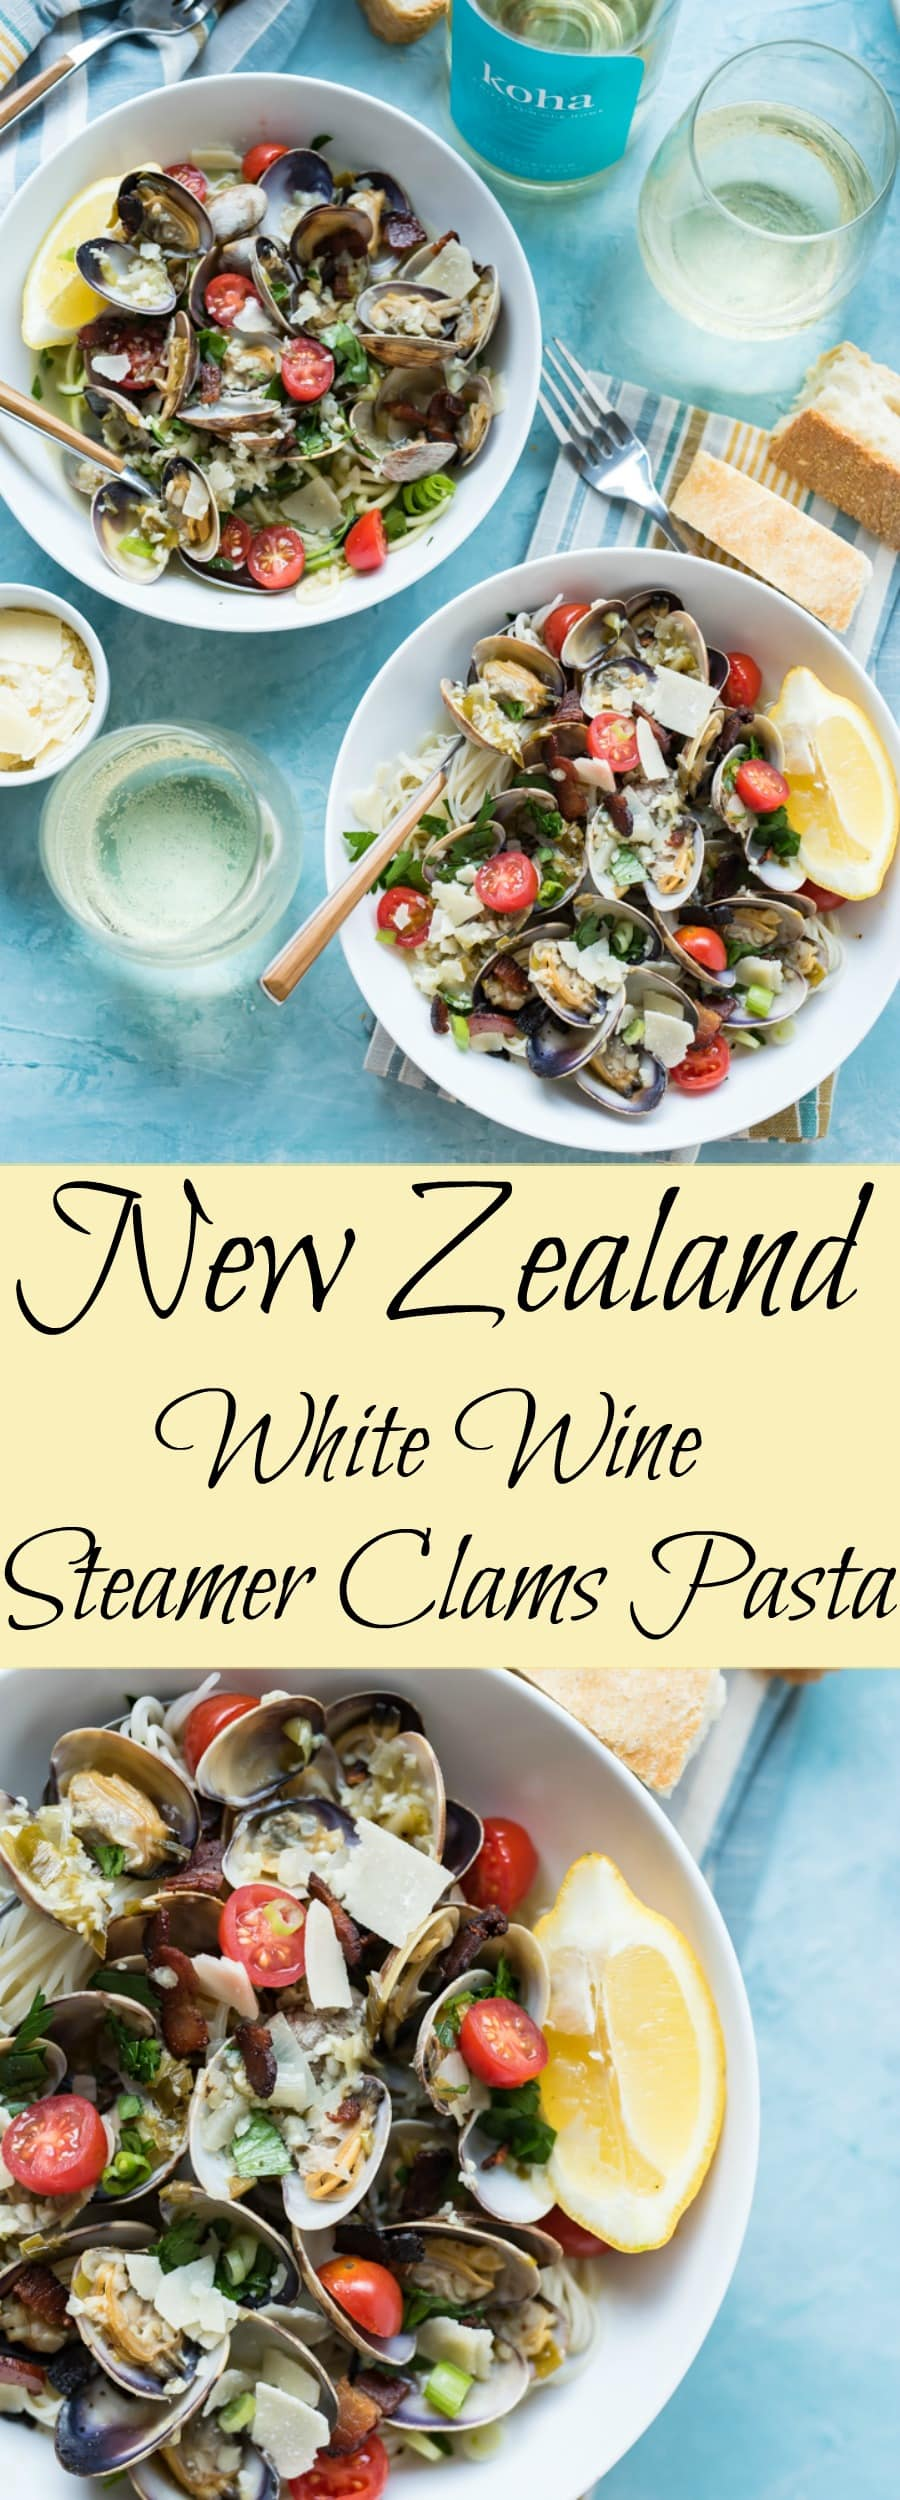 New Zealand White Wine Steamer Clams Pasta www.pineappleandcoconut.com